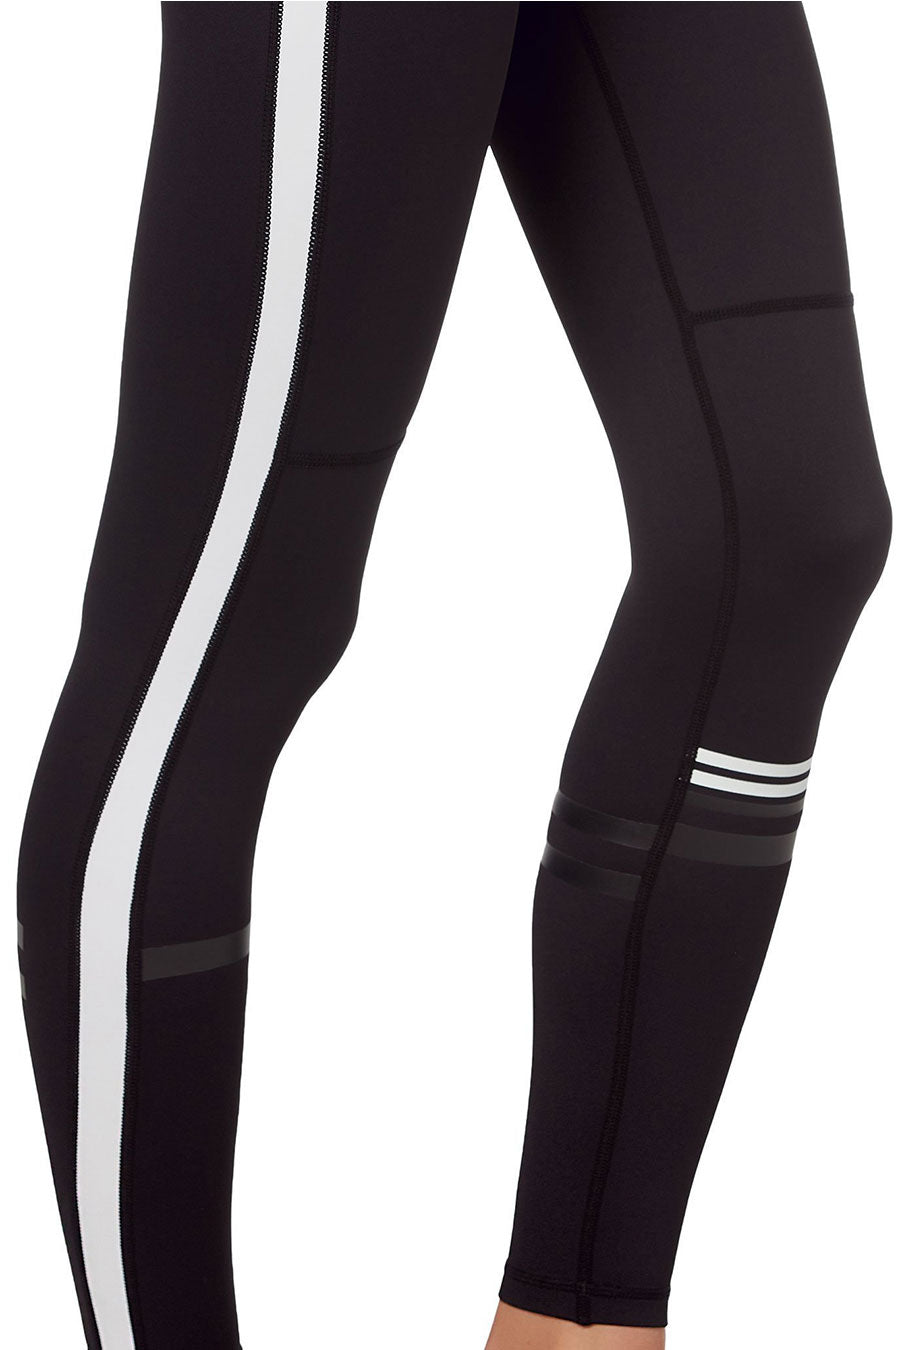 Dakota Legging - Mono Racer